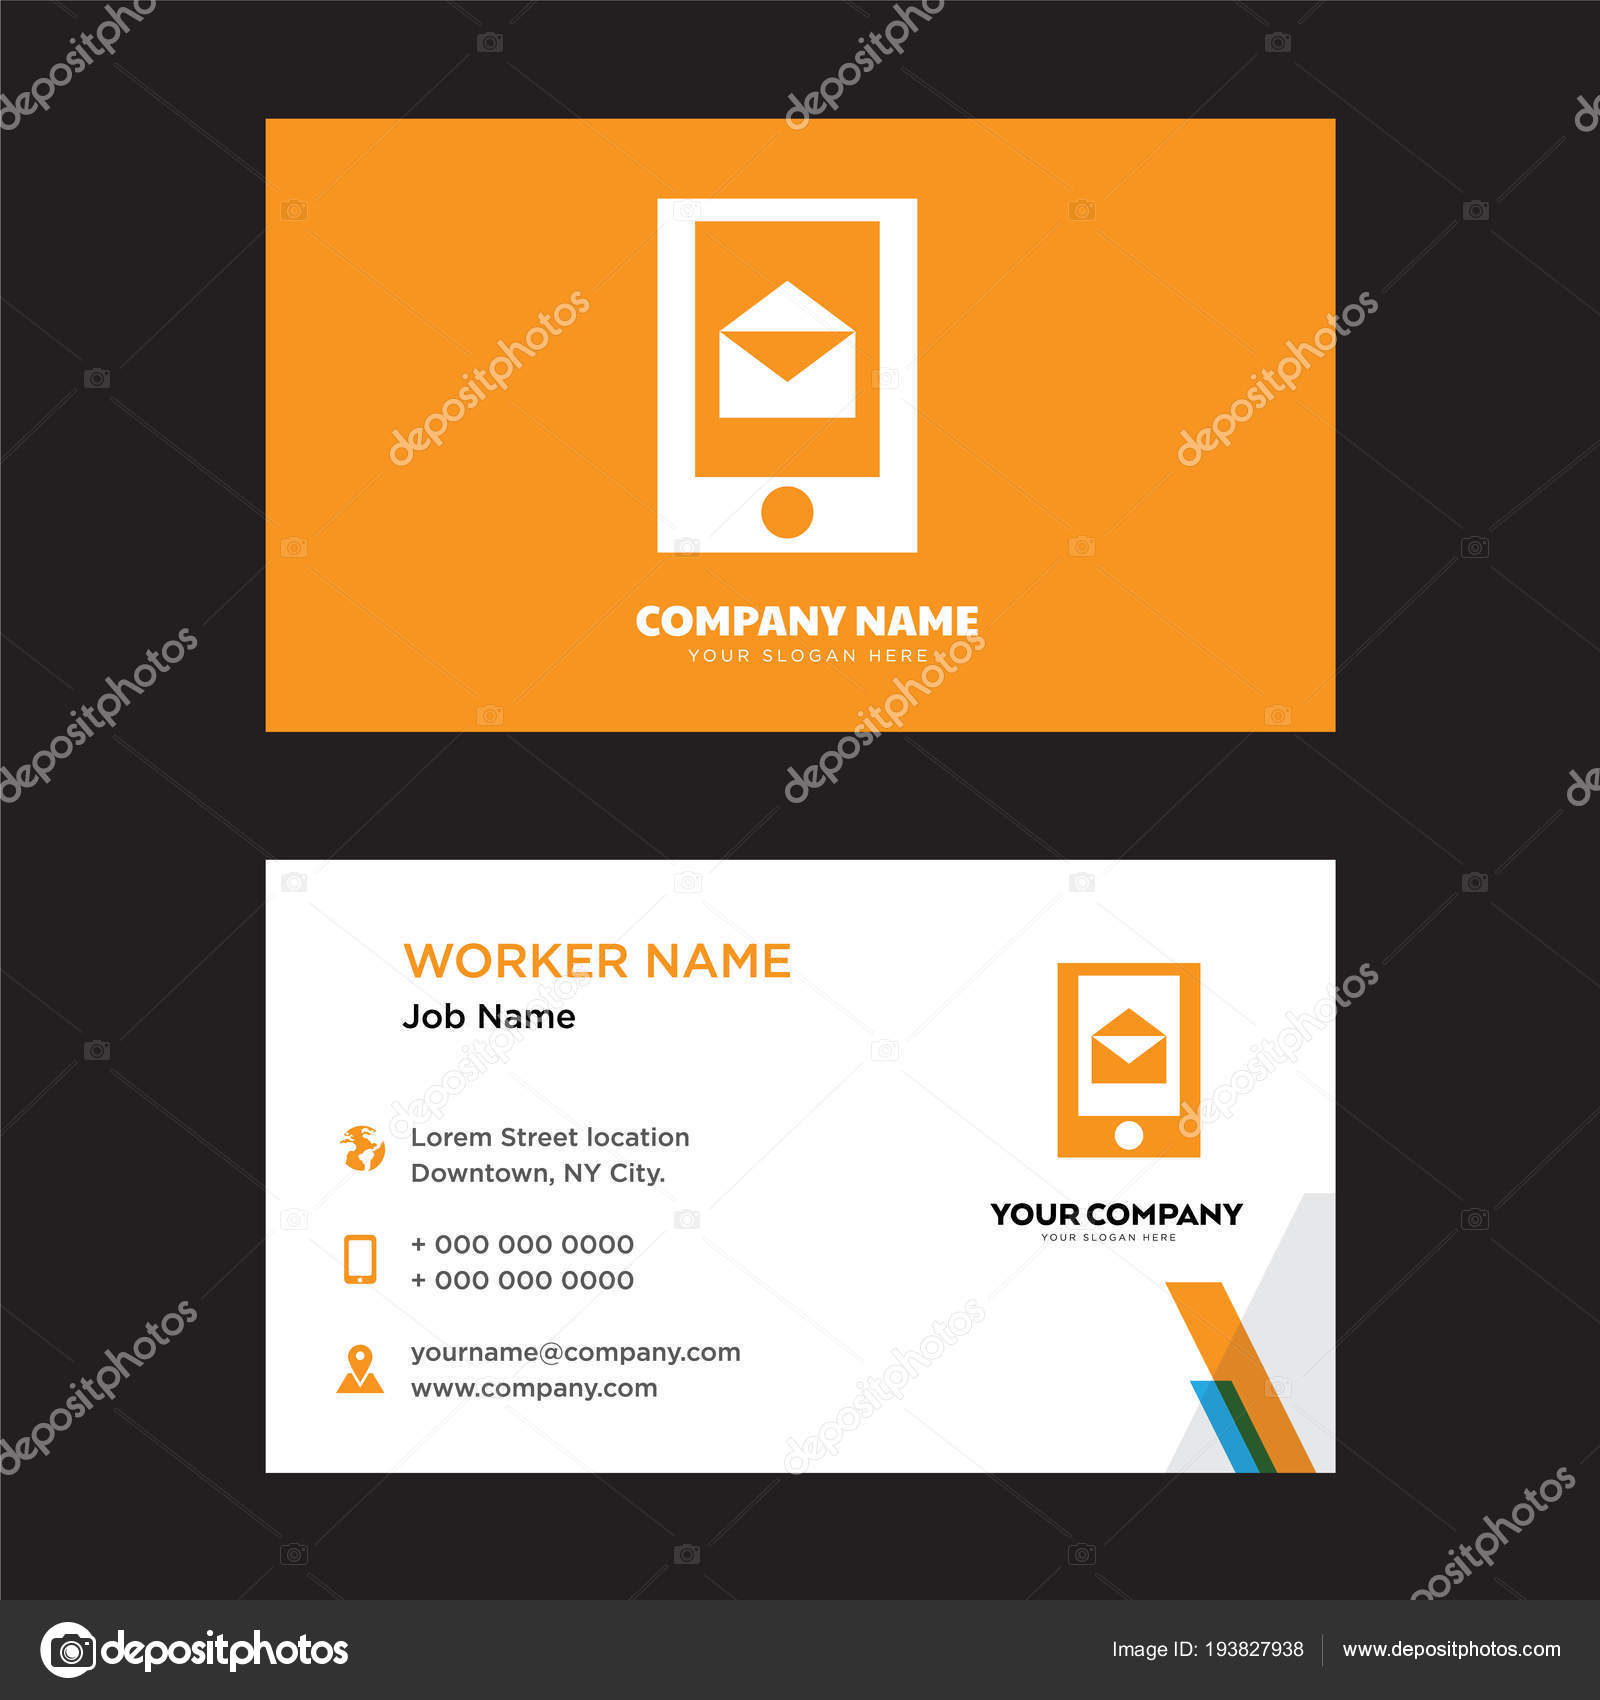 sending and receiving messages business card design — Stock Vector ...